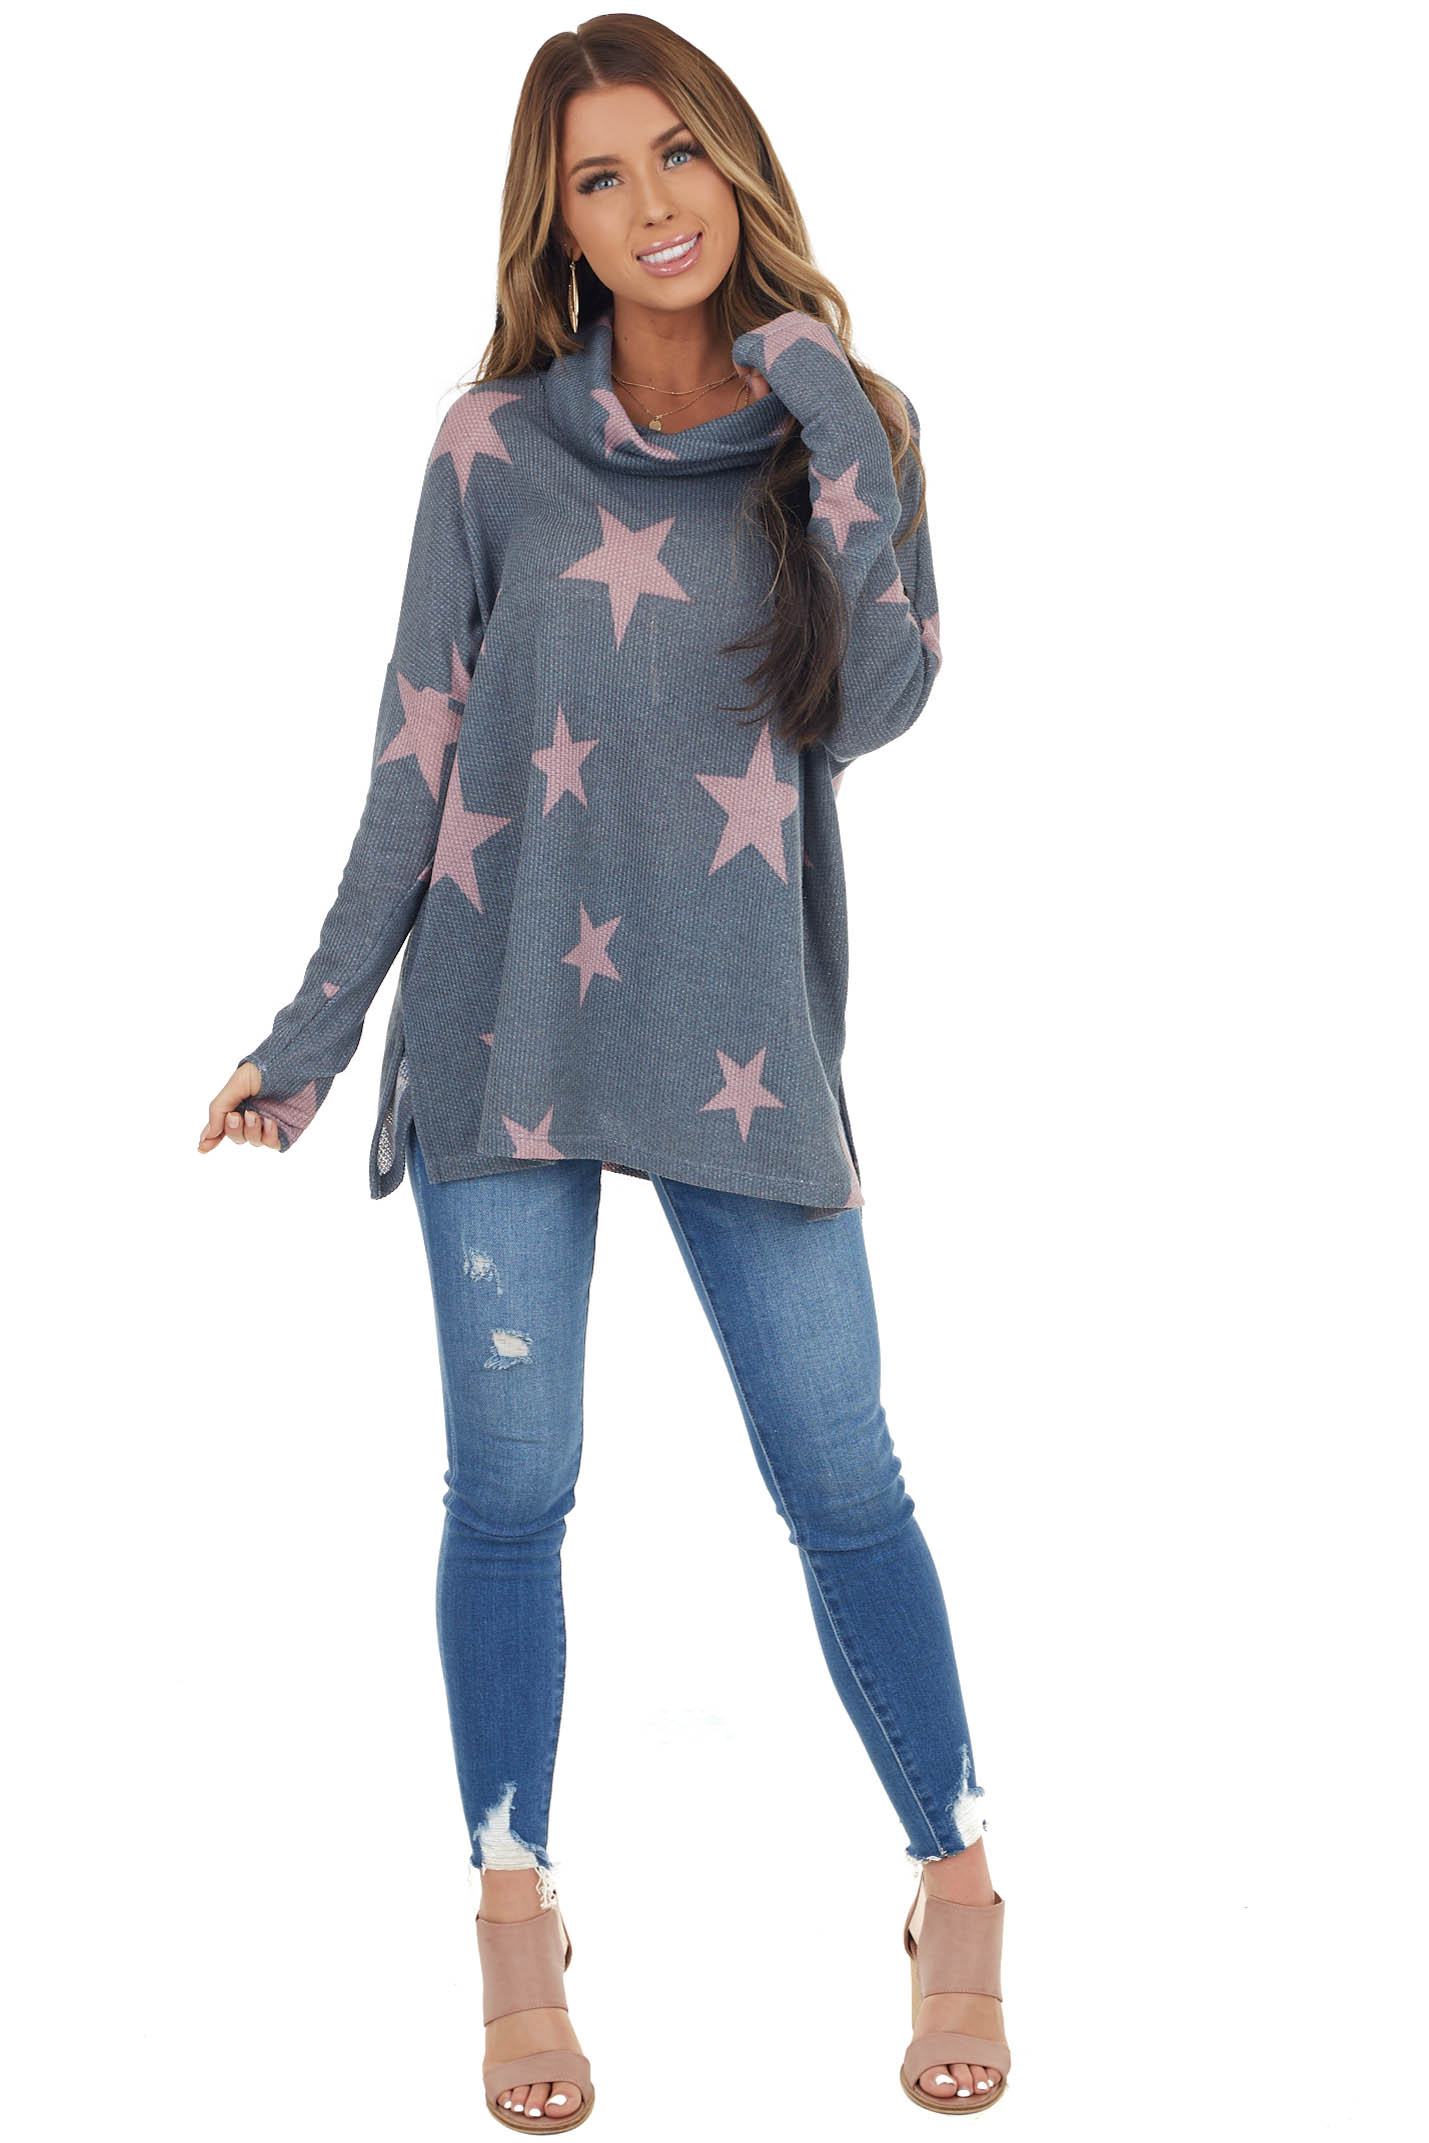 Stormy Grey Star Print Lightweight Sweater with Cowl Neck